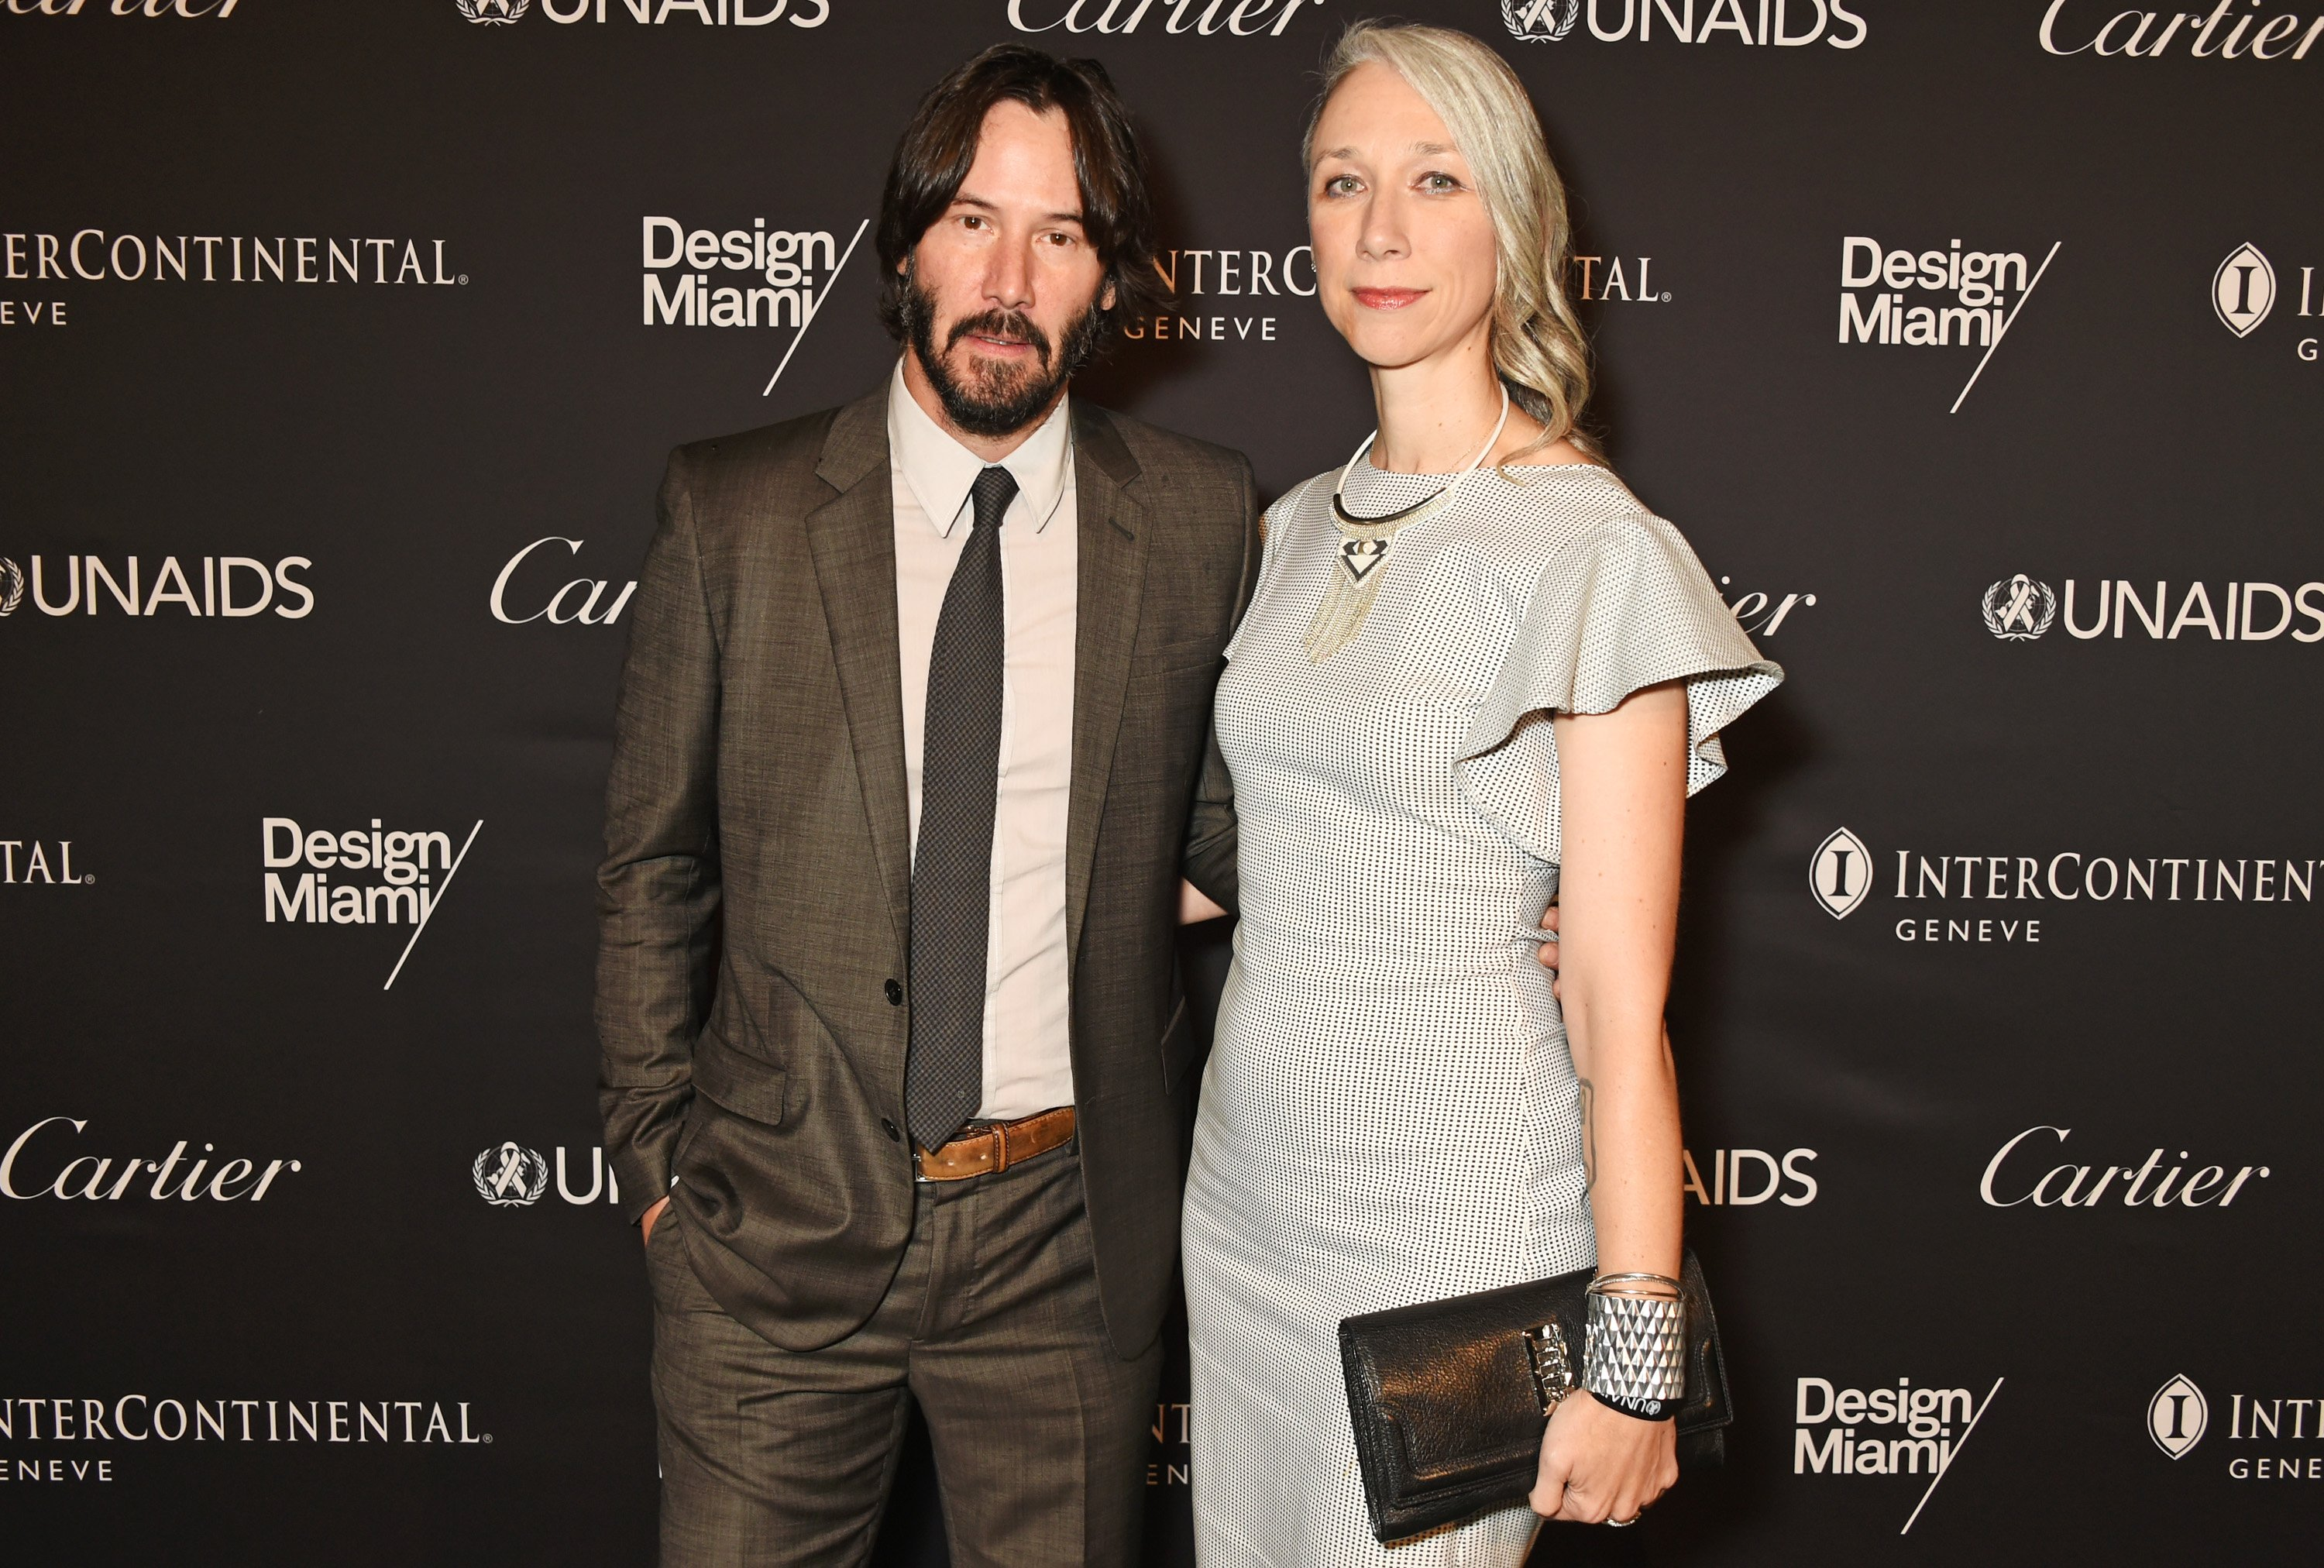 Keanu Reeves (L) and artist Alexandra Grant attend the UNAIDS Gala during Art Basel 2016 at Design Miami/ Basel on June 13, 2016, in Basel, Switzerland | Photo: Getty Images